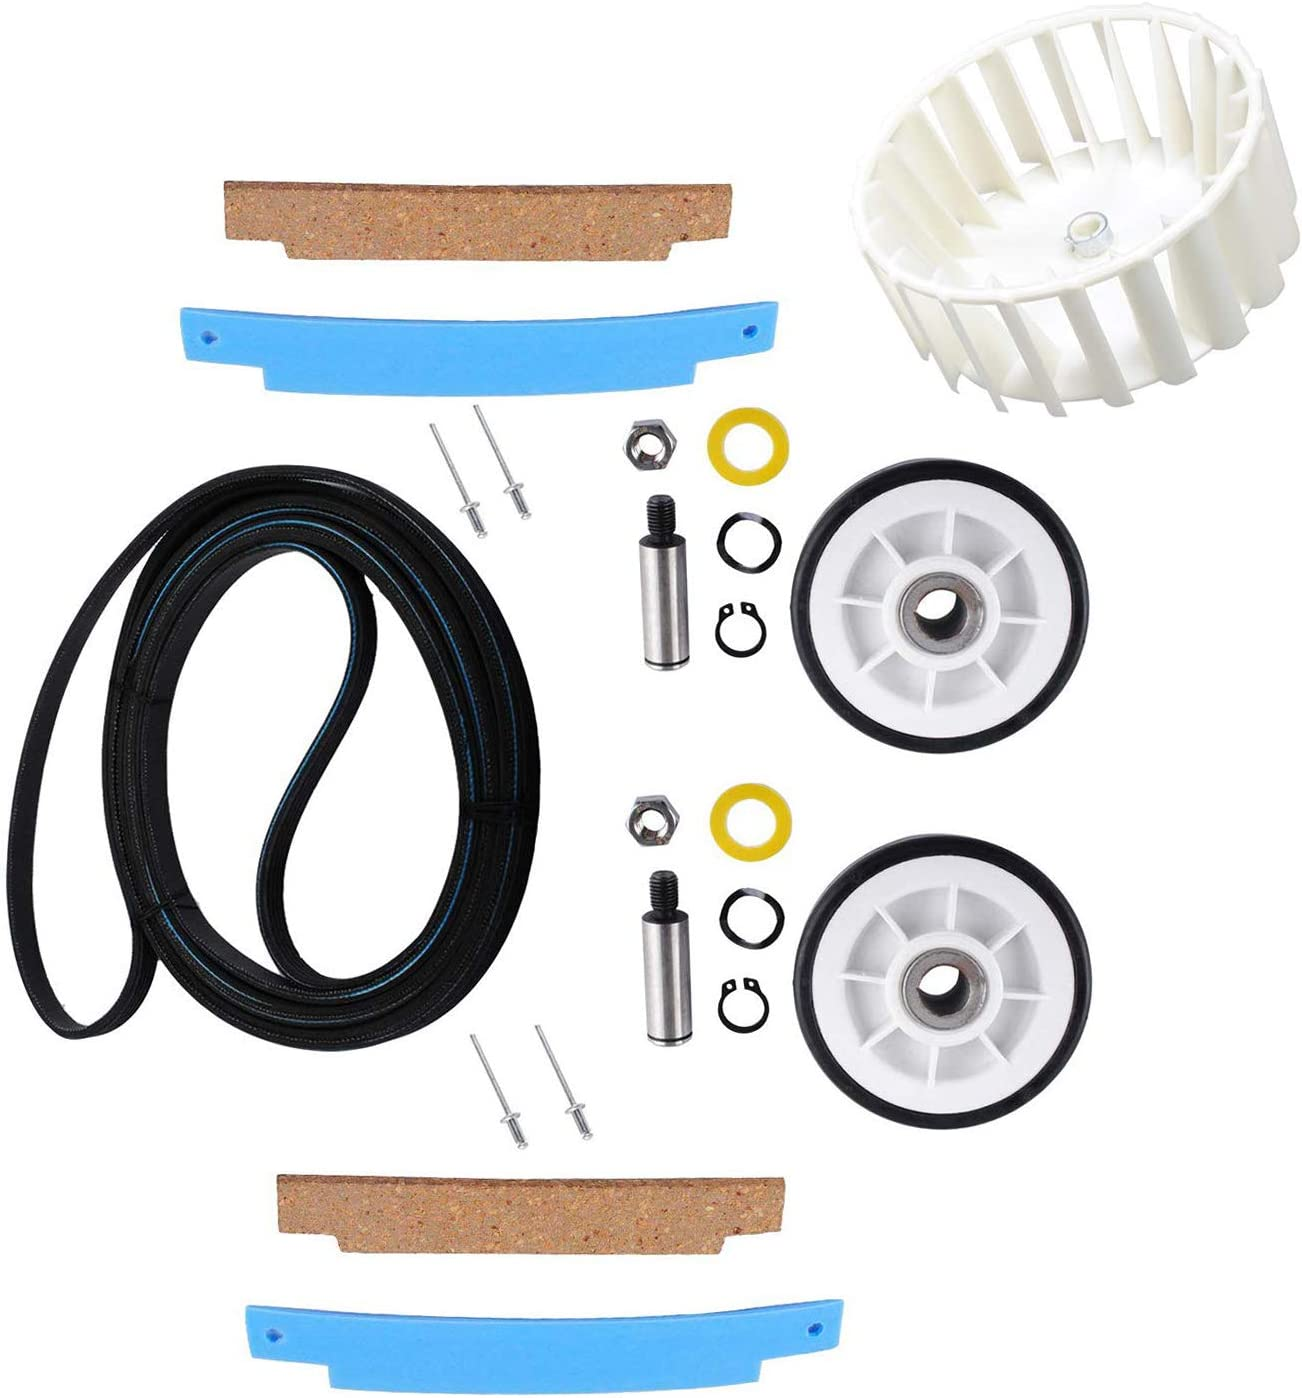 303373 Roller Kit Set of Two Compatible with May-tag Dryer 12001541 Replaces for Whirlpool 303836 with Dryer Repair kit Compatible with 312959 Dry Drum Belt,306508 Dryer Bearing Kit by Wadoy